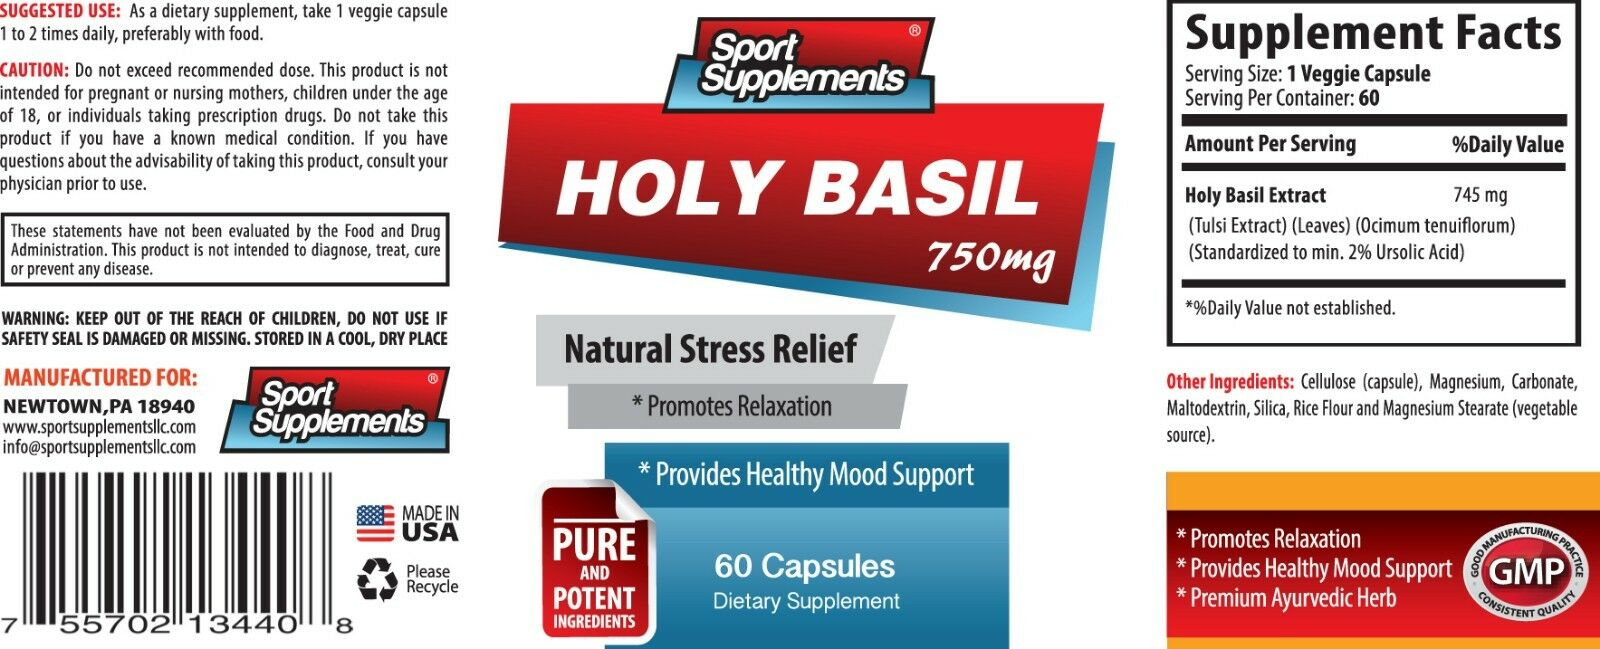 Niedriger Cholesterol - - Cholesterol Holy Basil Extract 750mg - Protect Your Joints  Pills 6B 83a2c9